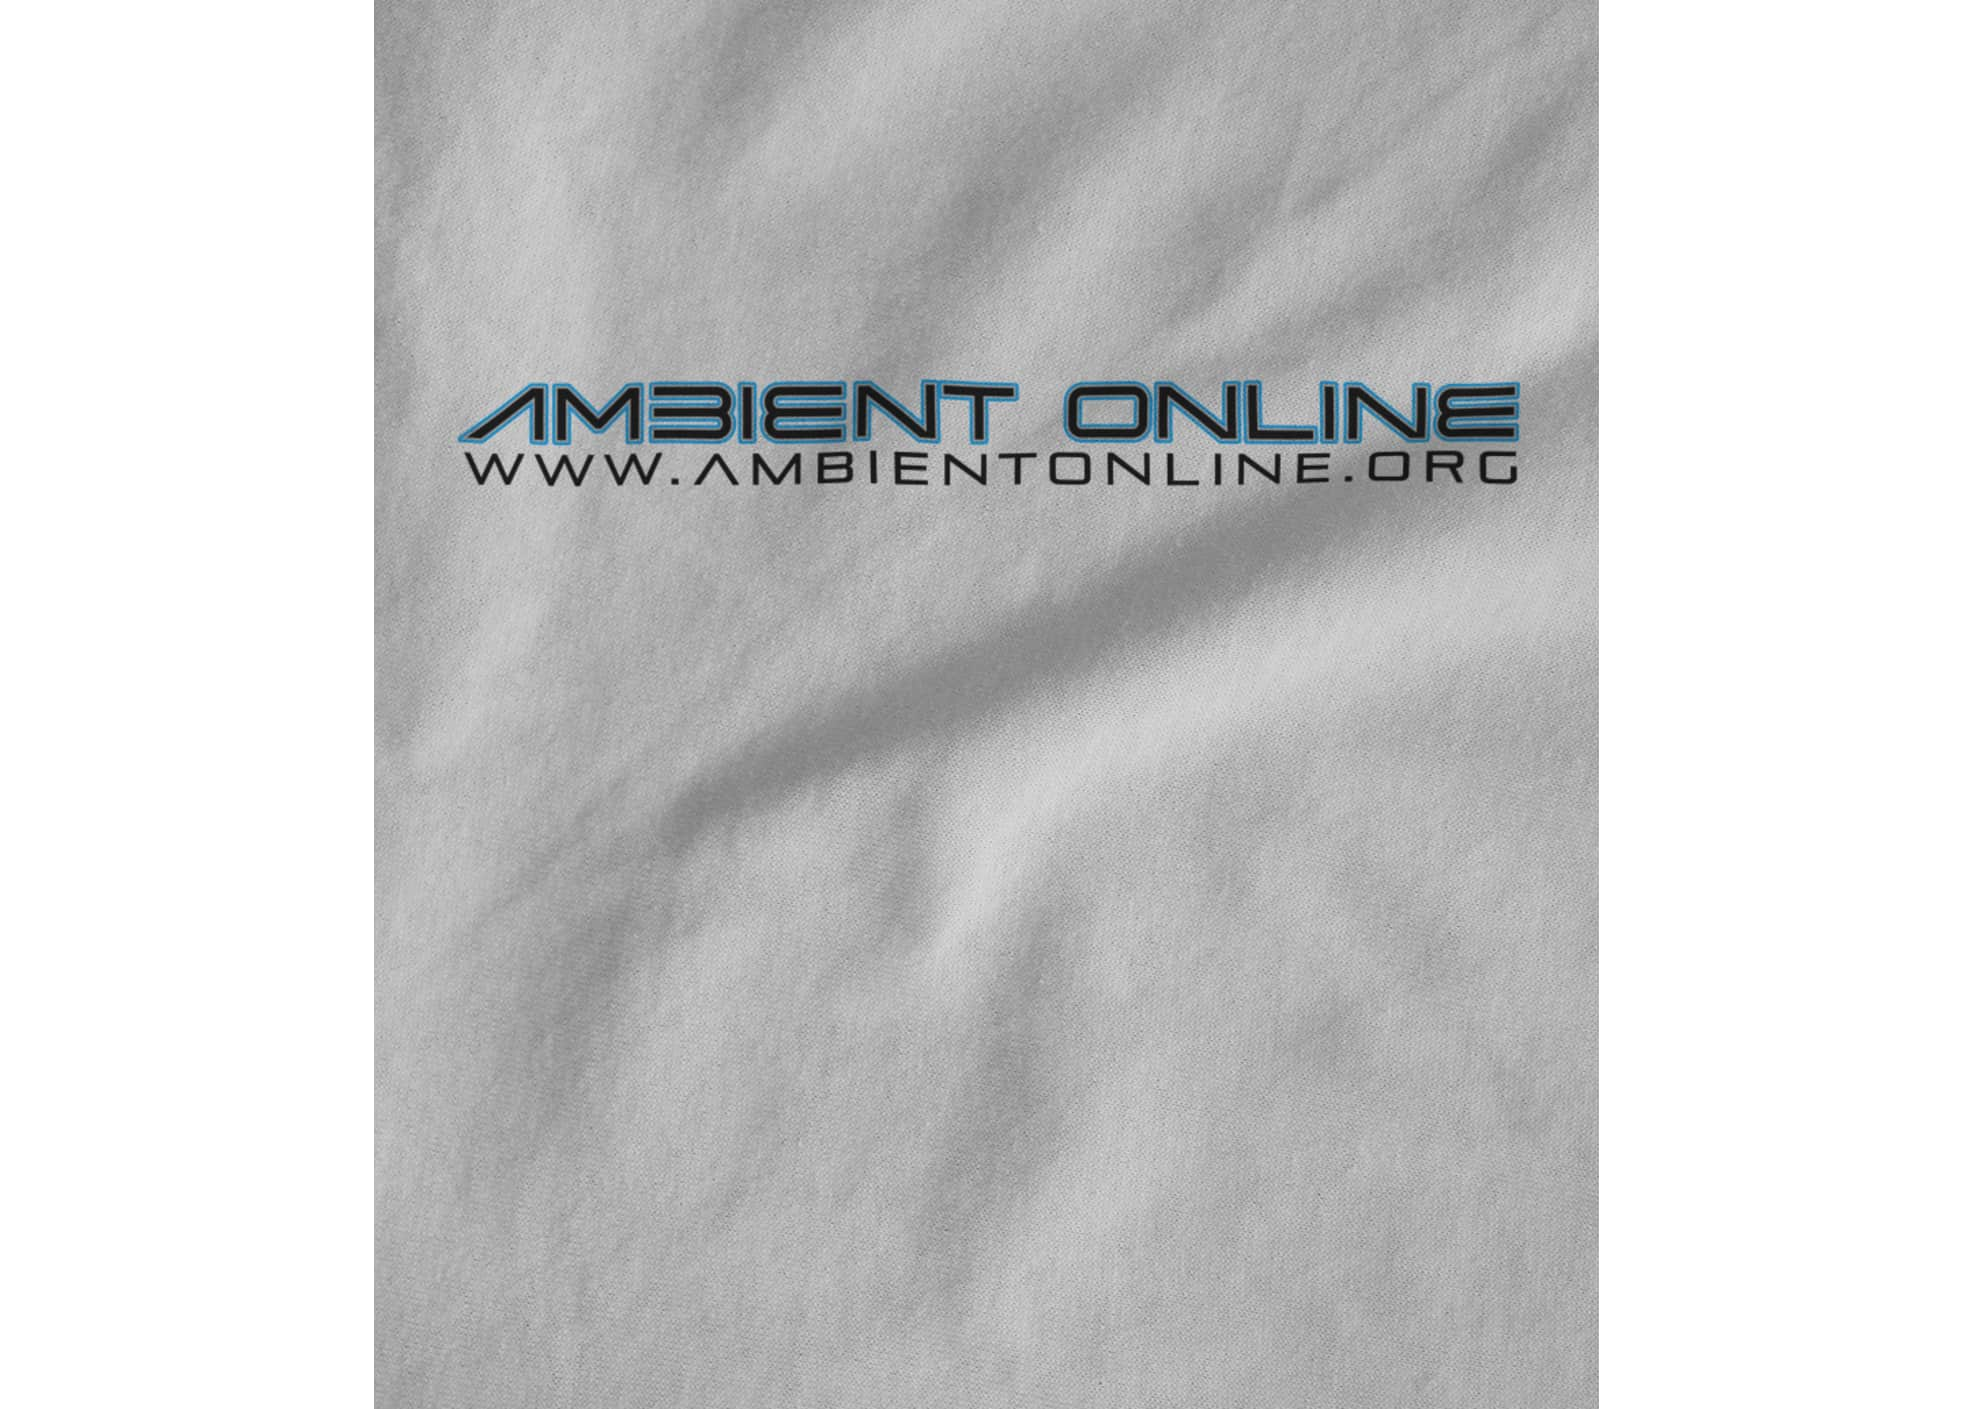 Ambient online ao main logo new 1576264540